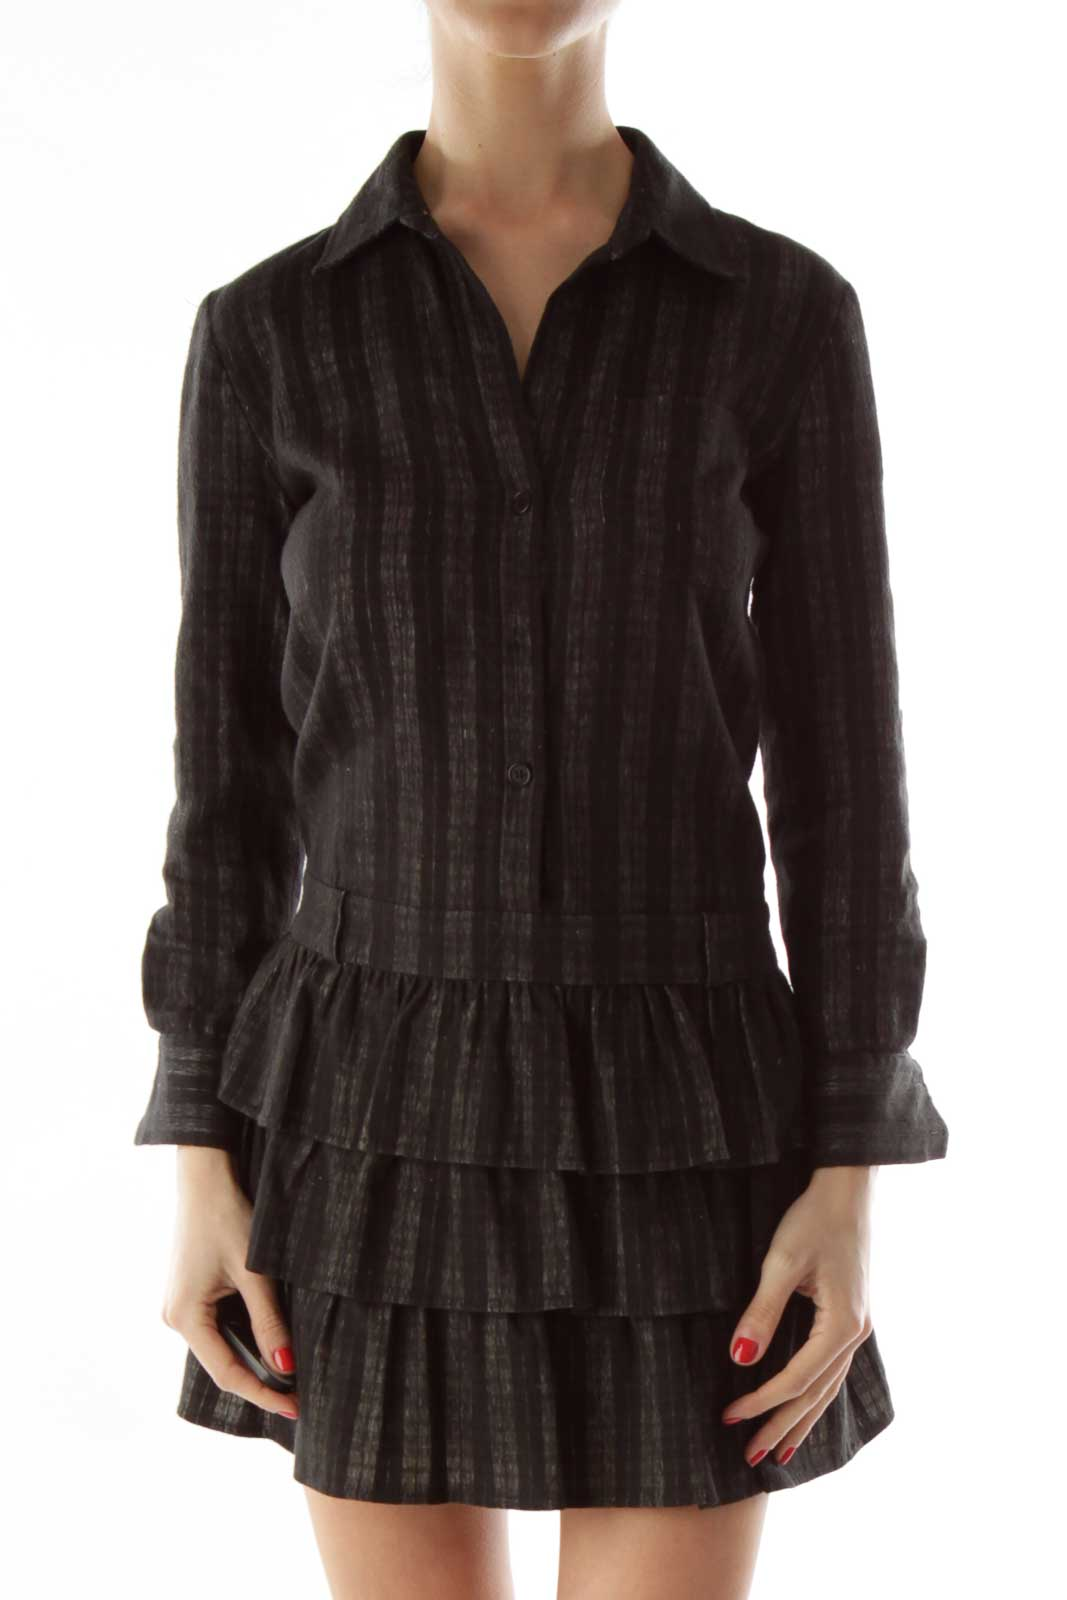 Gray Black Striped Ruffled Day Dress Front